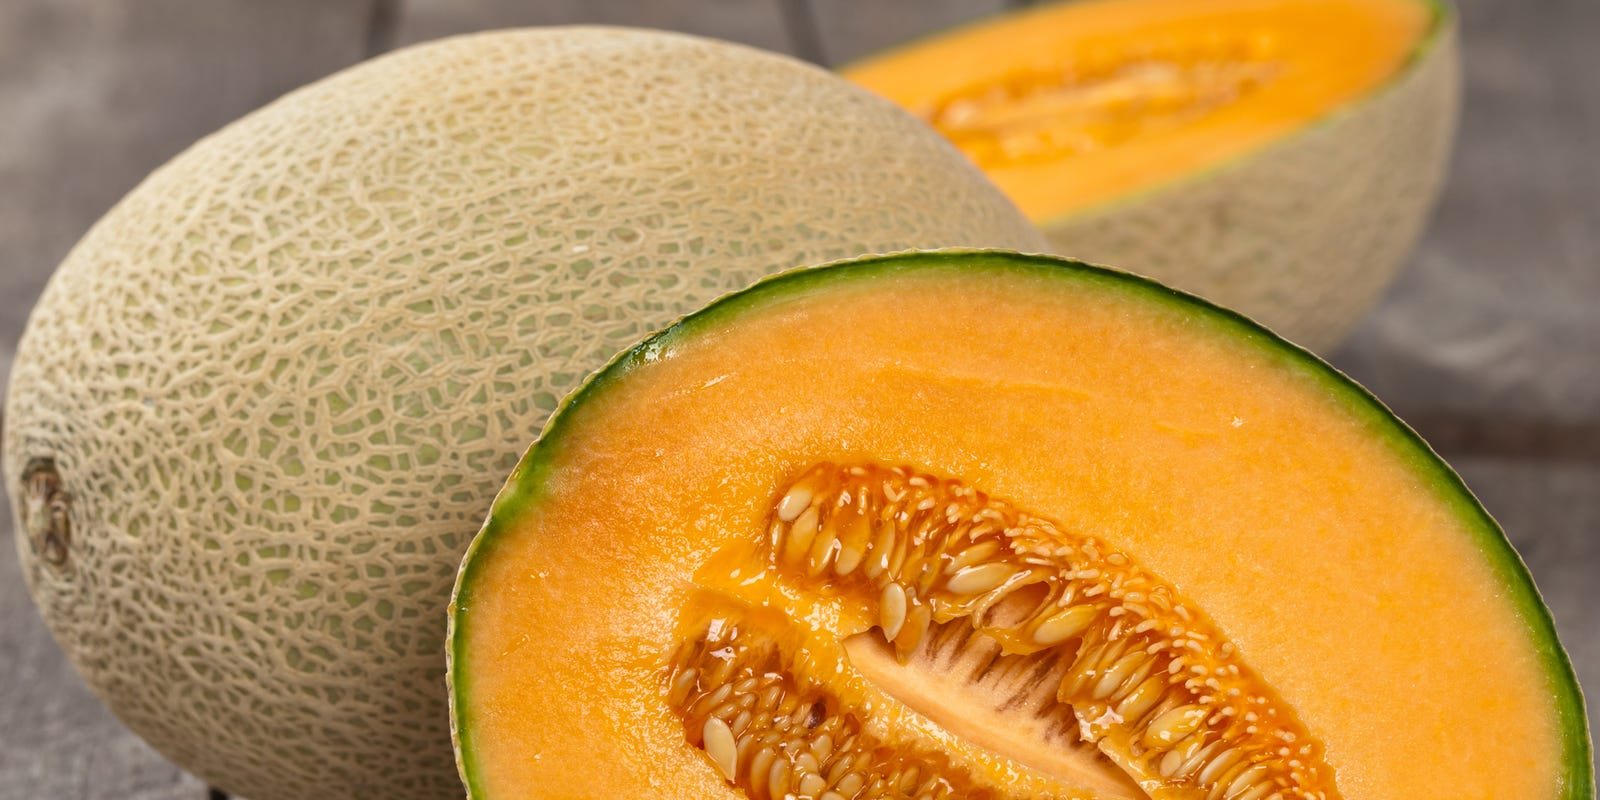 California Cantaloupes Are Fragrant Juicy And Delicious Verifying your browser, please wait 5 secondsddos protection by react.su. california cantaloupes are fragrant